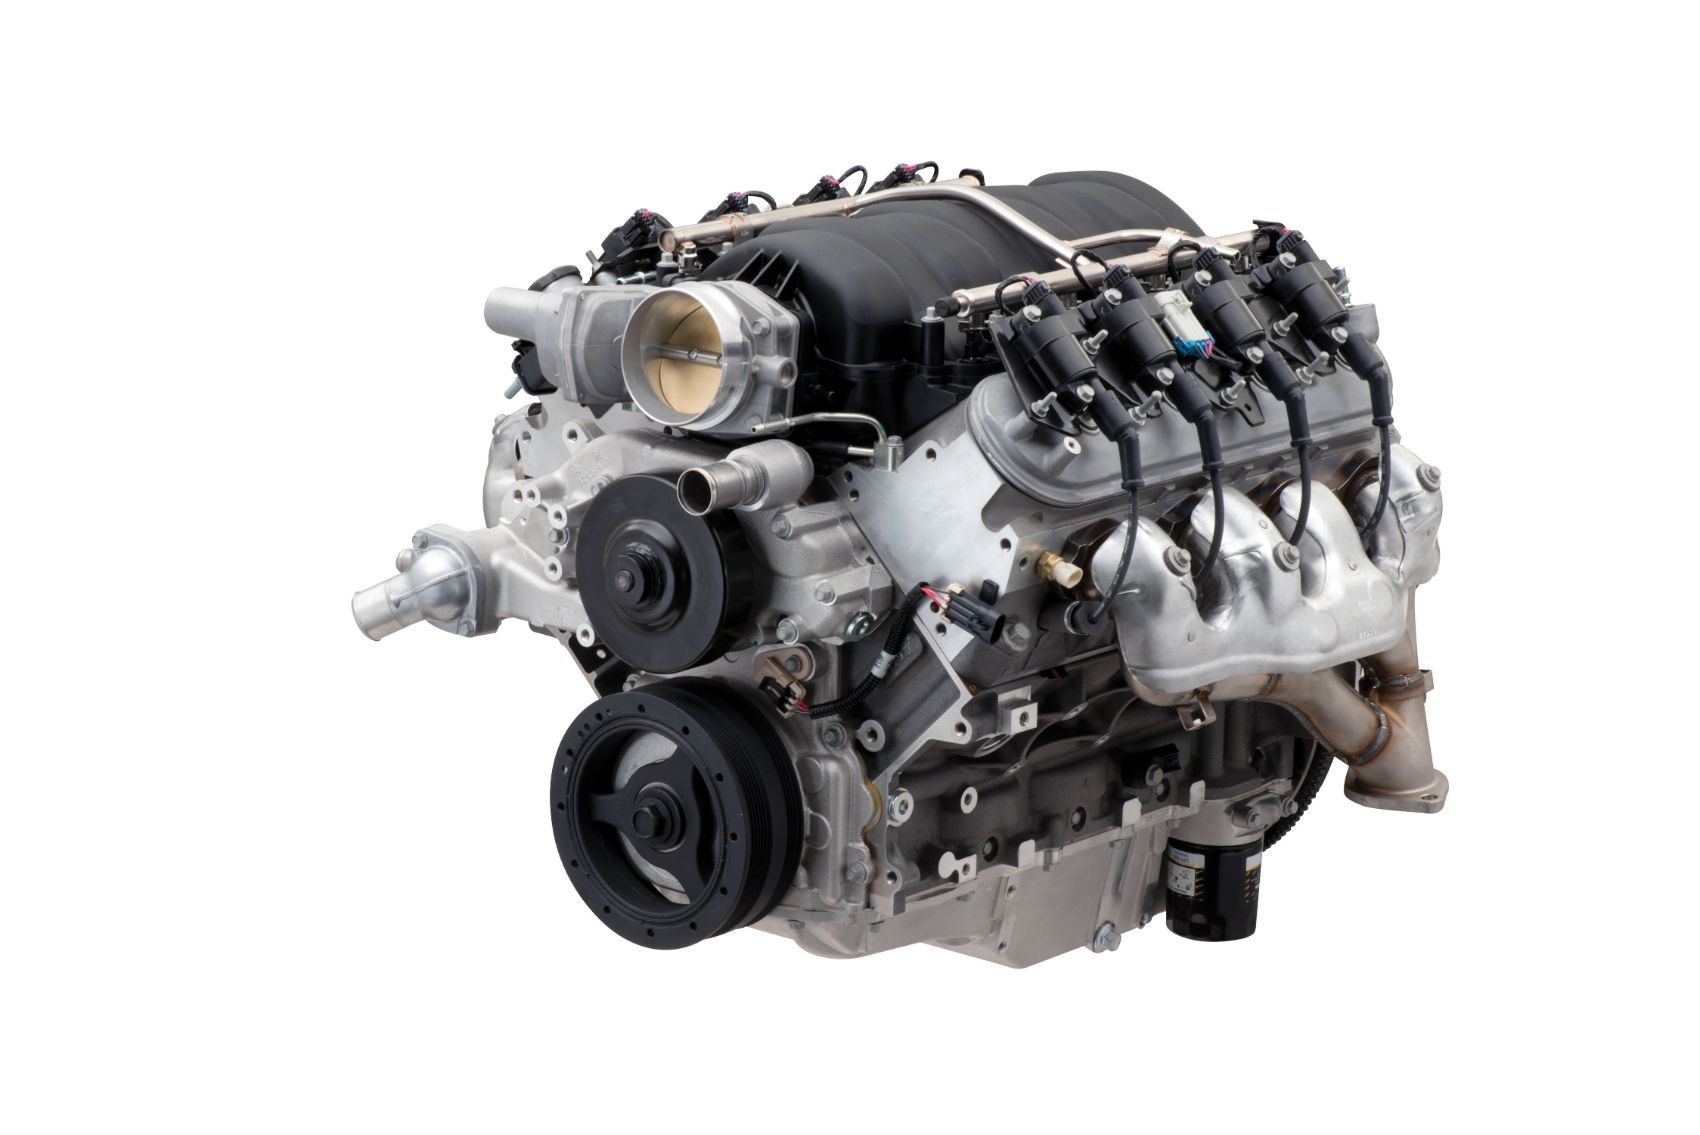 LS427/570 Crate Engine: Chevrolet Performance Unveils Powerplant Inspired by LS7 7.0L